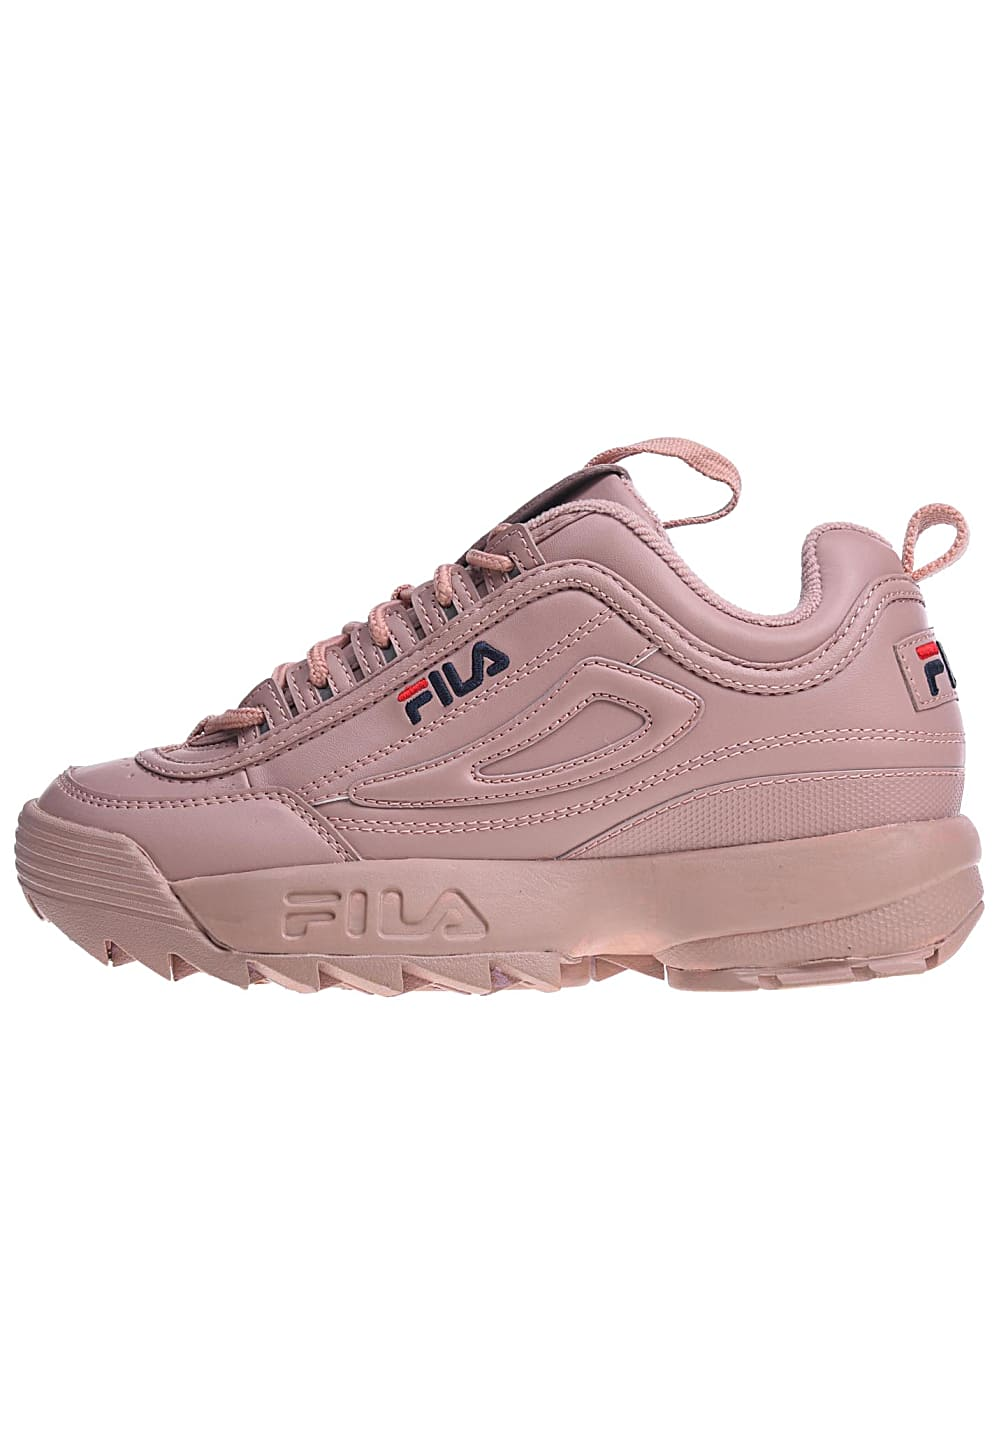 Fila Heritage Disruptor Low - Sneaker für Damen - Pink - Planet Sports